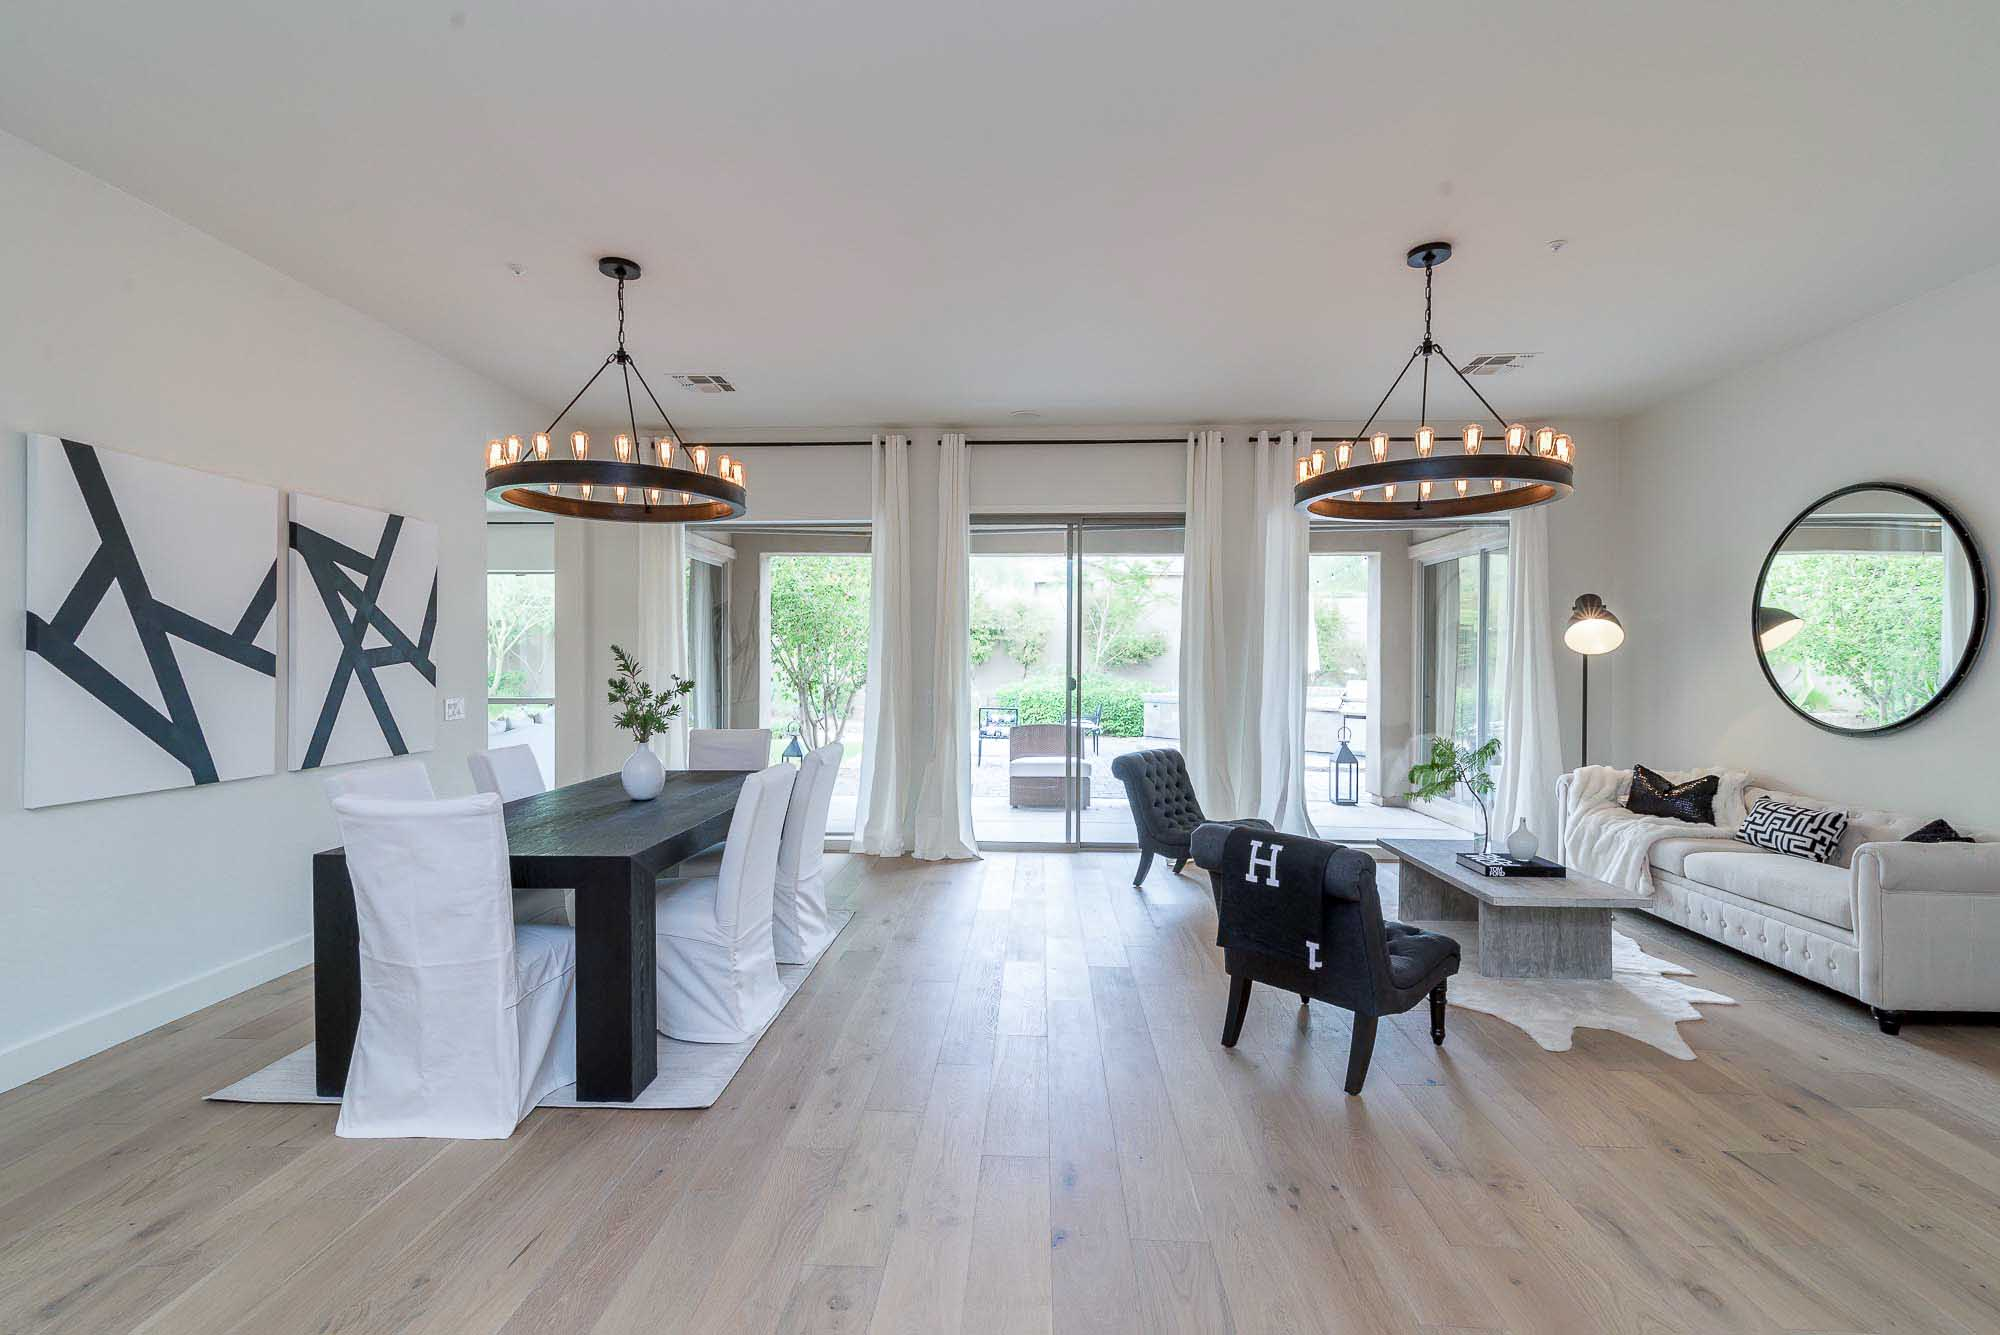 Modern living room with dining table for six and chandeliers